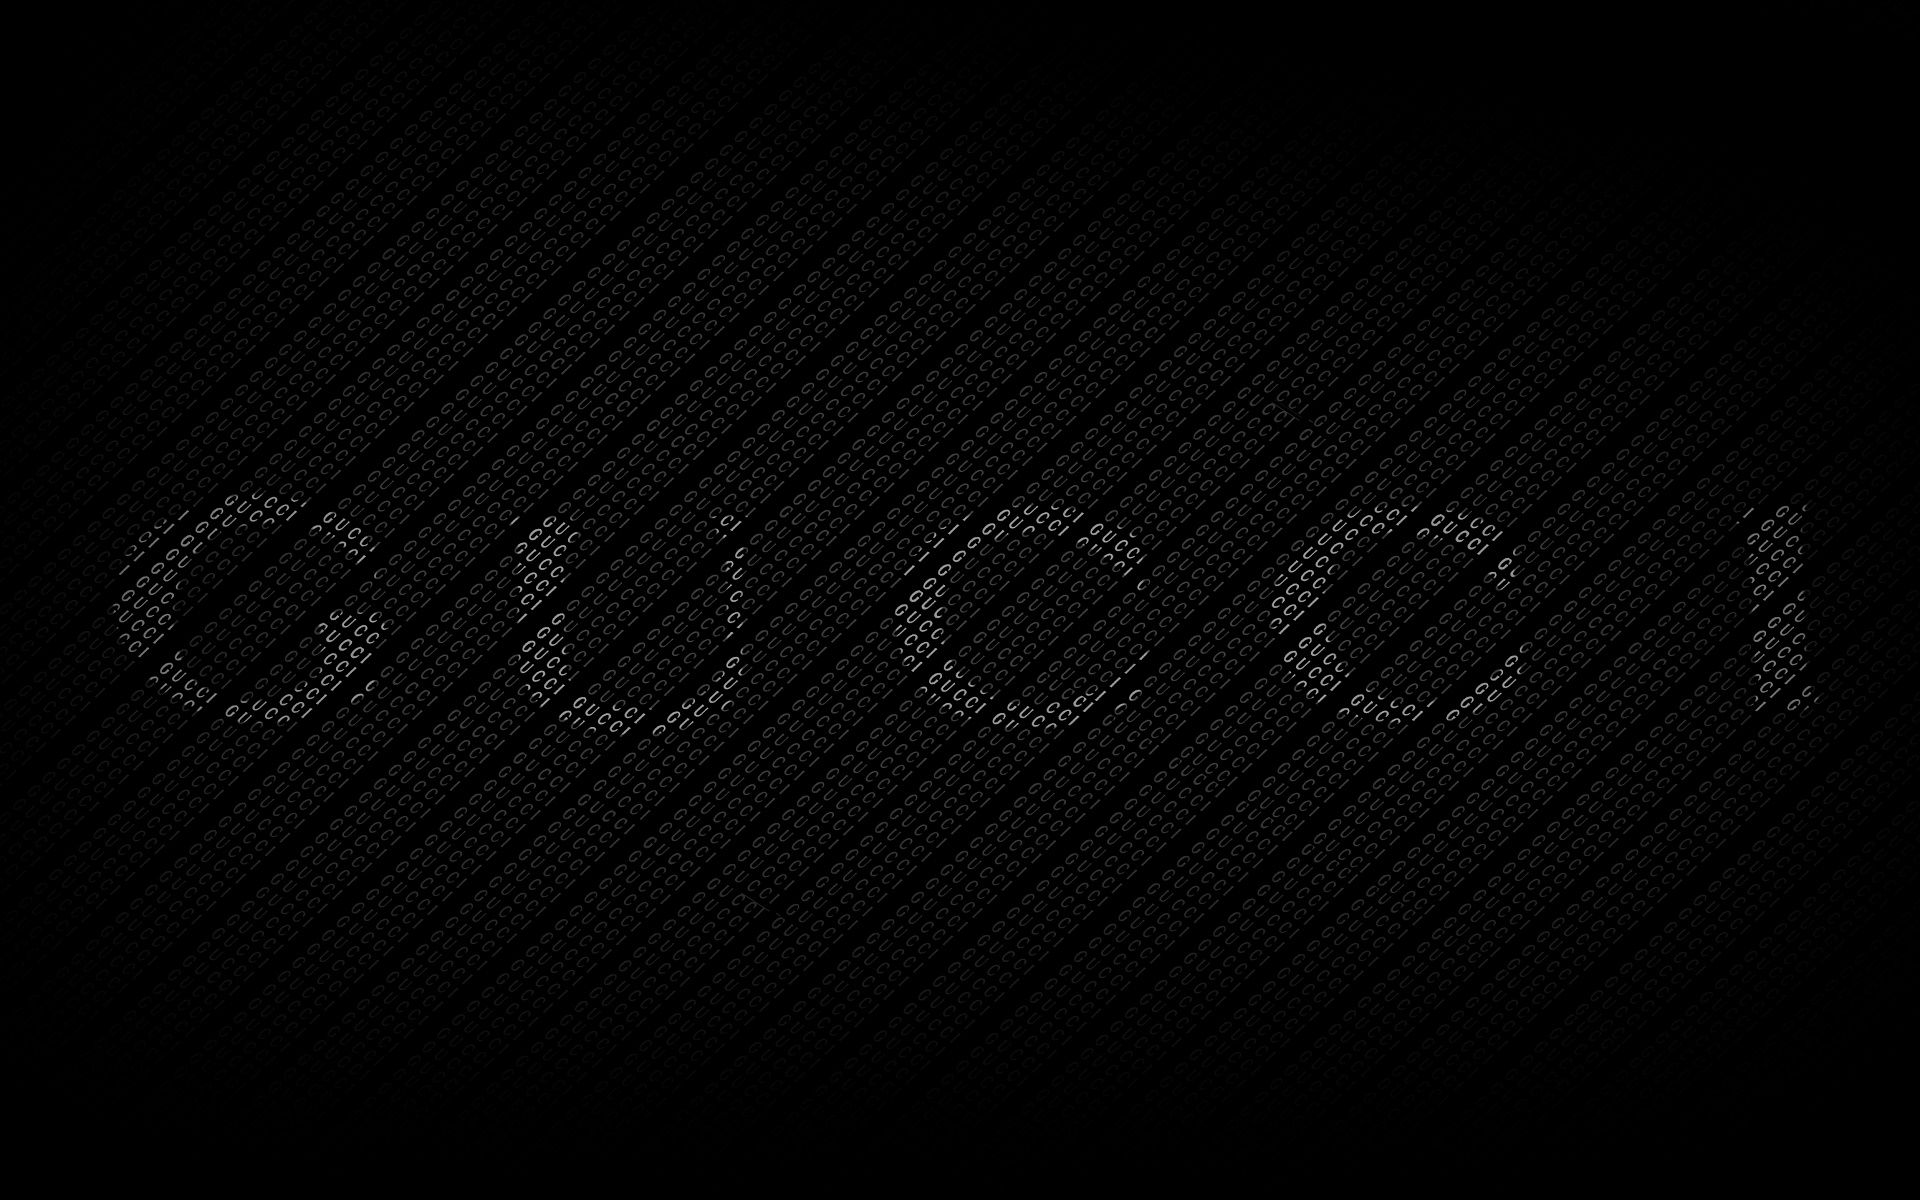 Download desktop gucci wallpapers HD. Gucci Pinterest